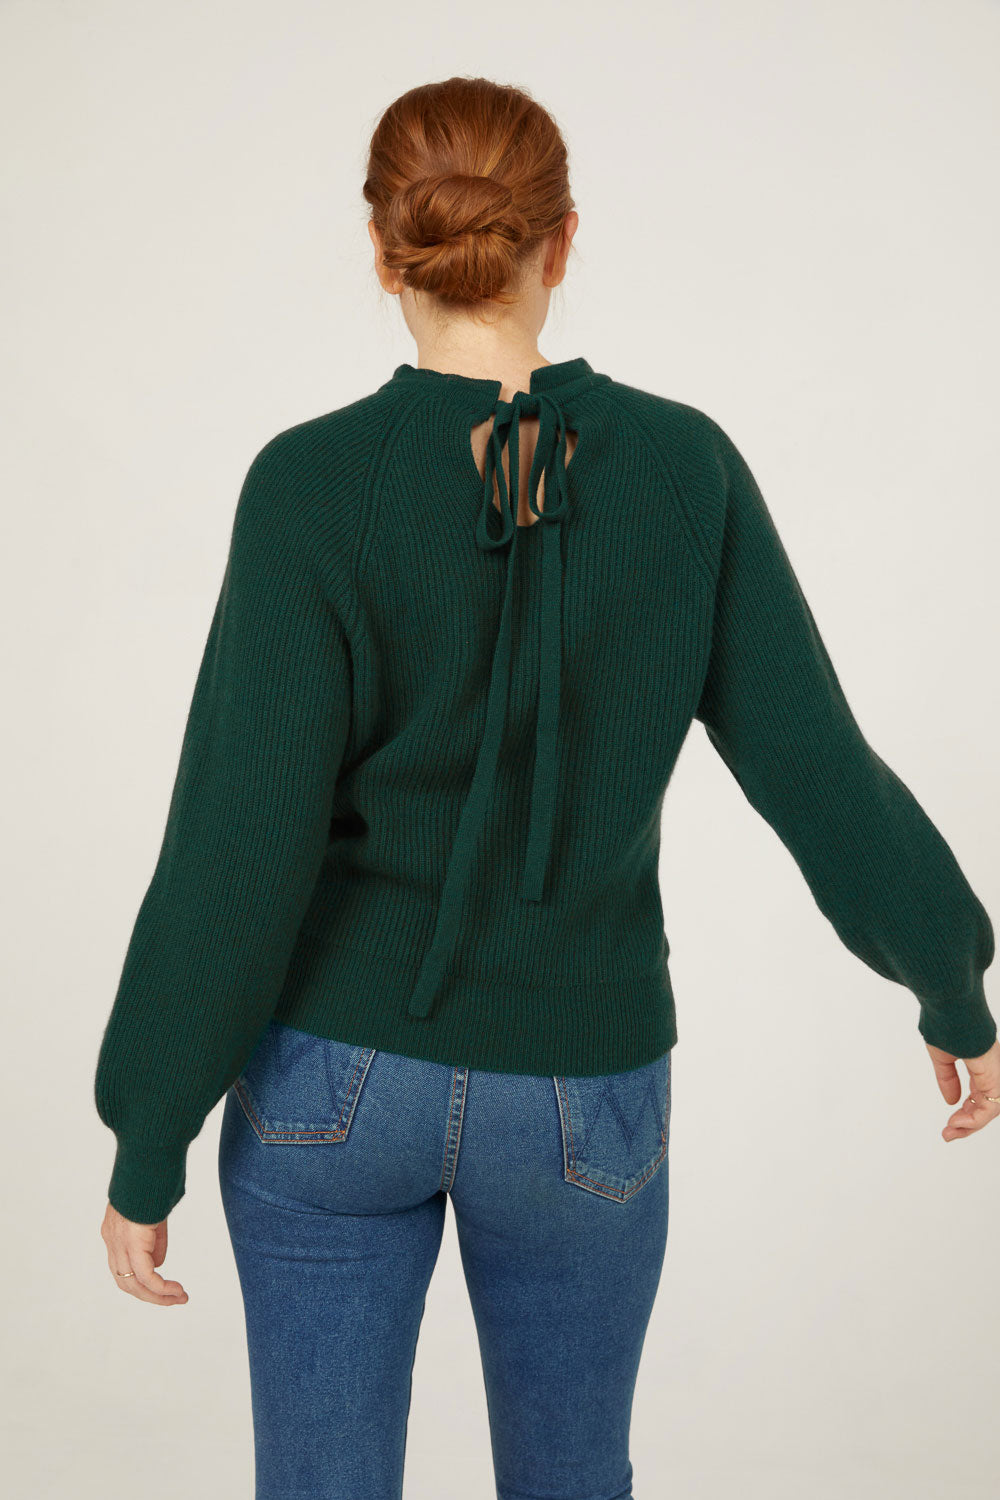 Evergreen cashmere mock neck pullover sweater with tie back back detail